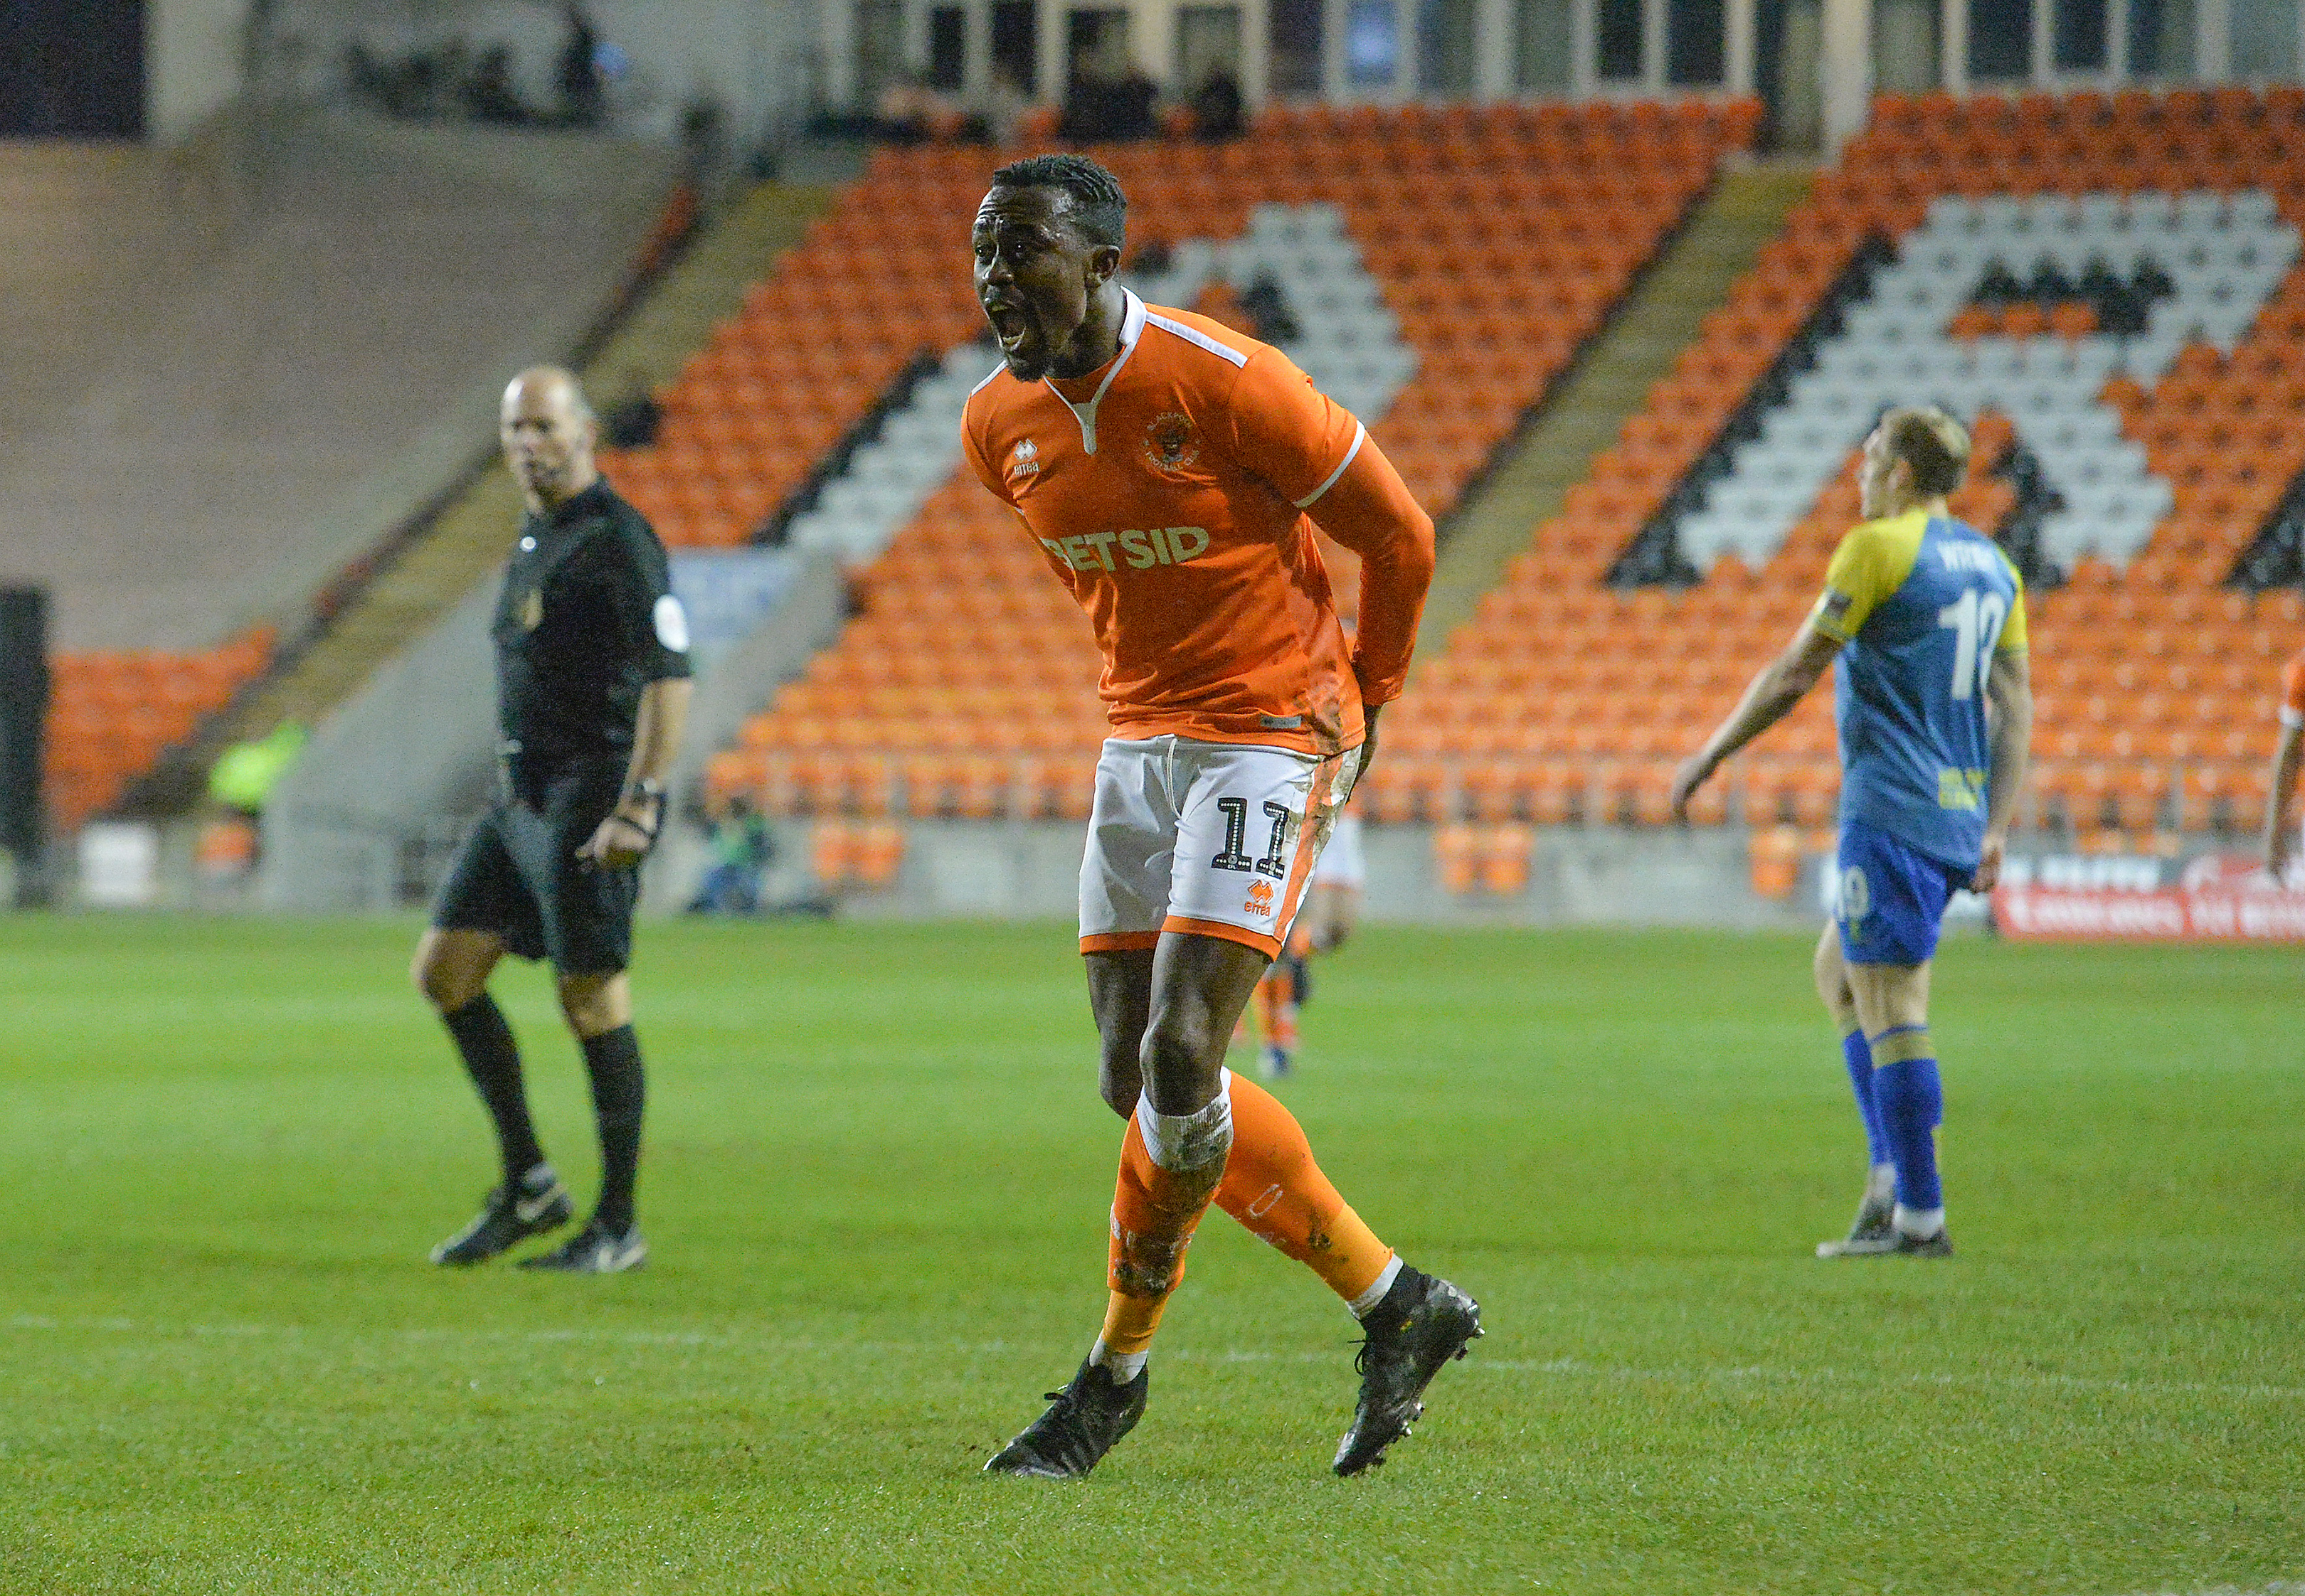 Blackpool v Solihull Moors - FA Cup Second Round Replay